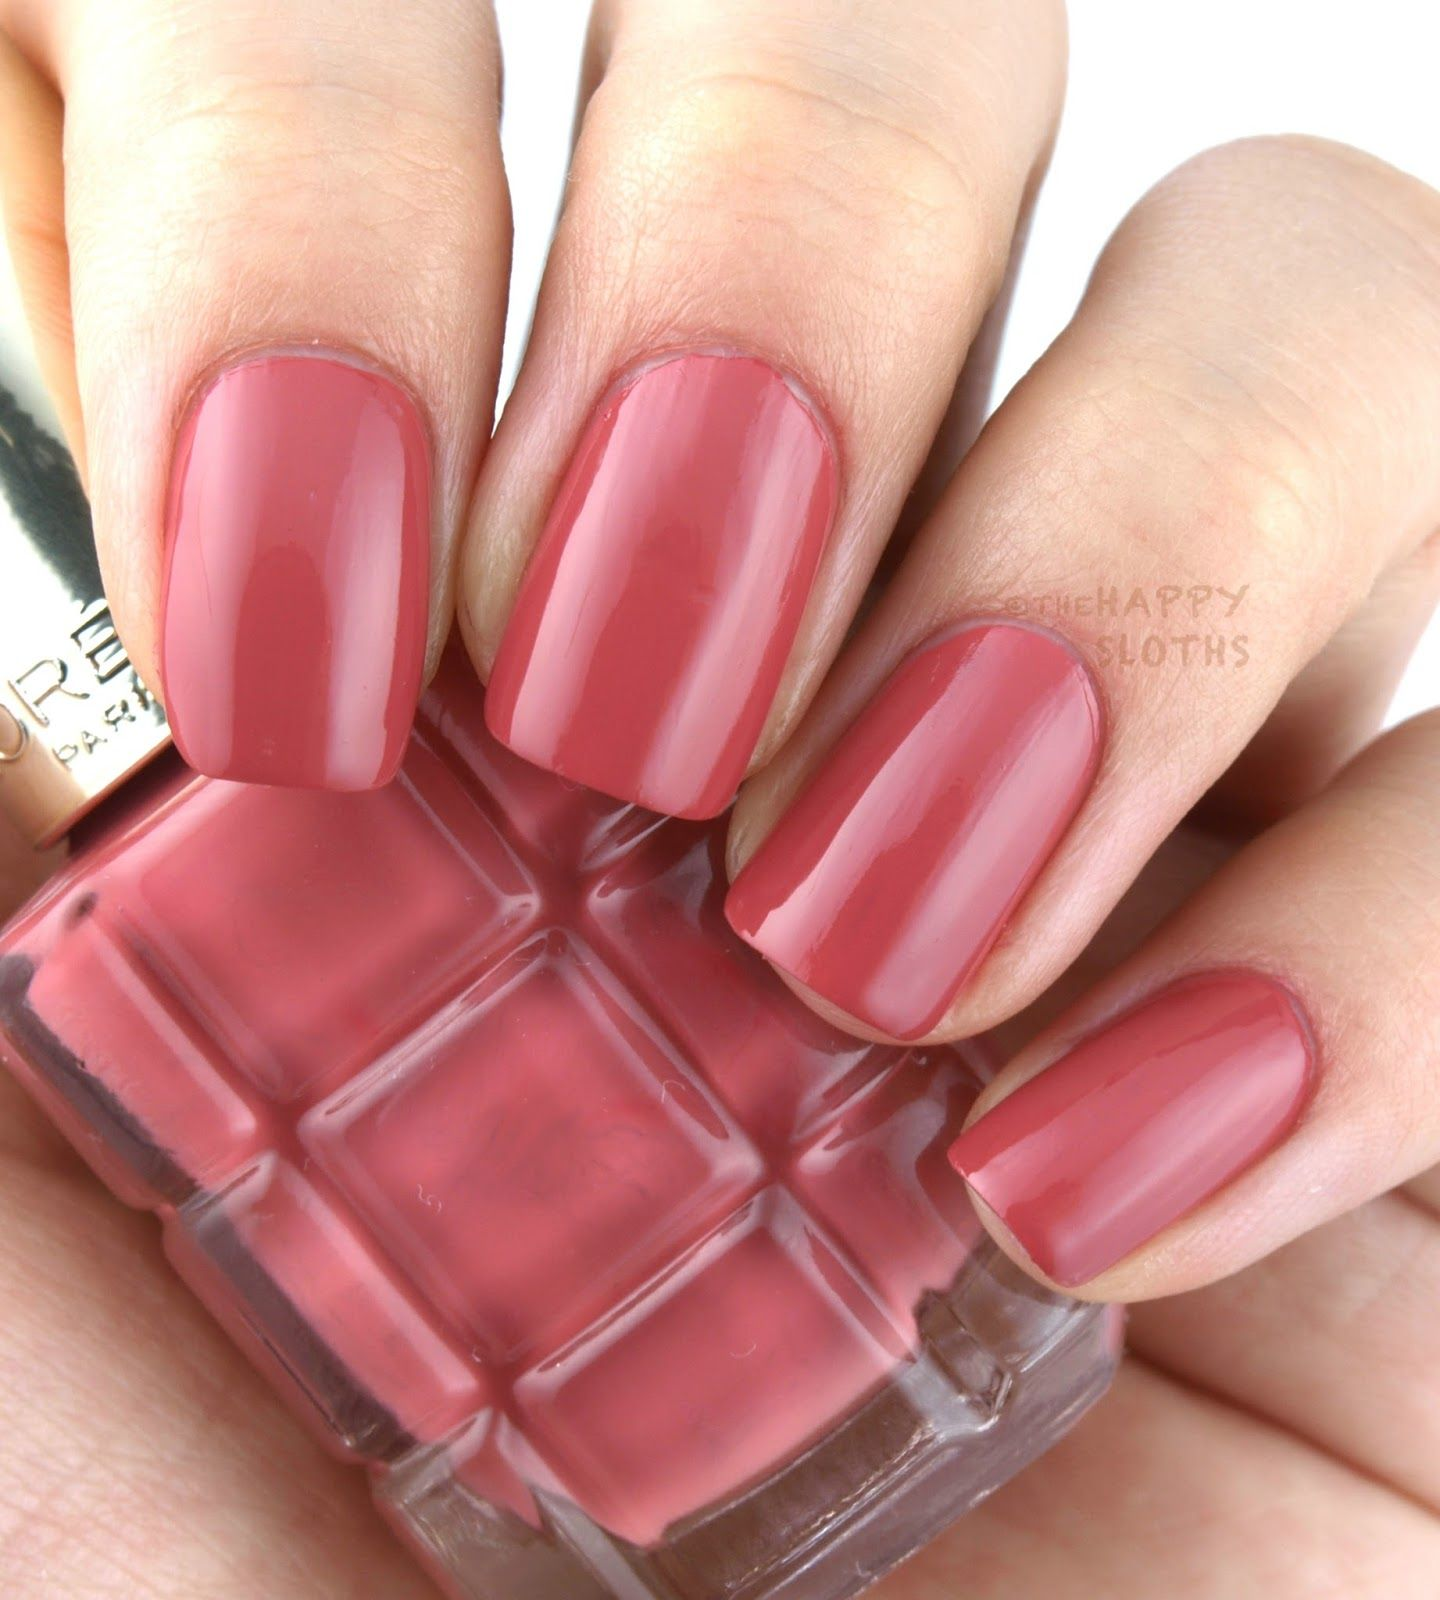 L Oreal Color Riche Le Vernis A L Huile Nail Polish Review And Swatches Nail Polish Nail Polish Colors Loreal Nail Polish